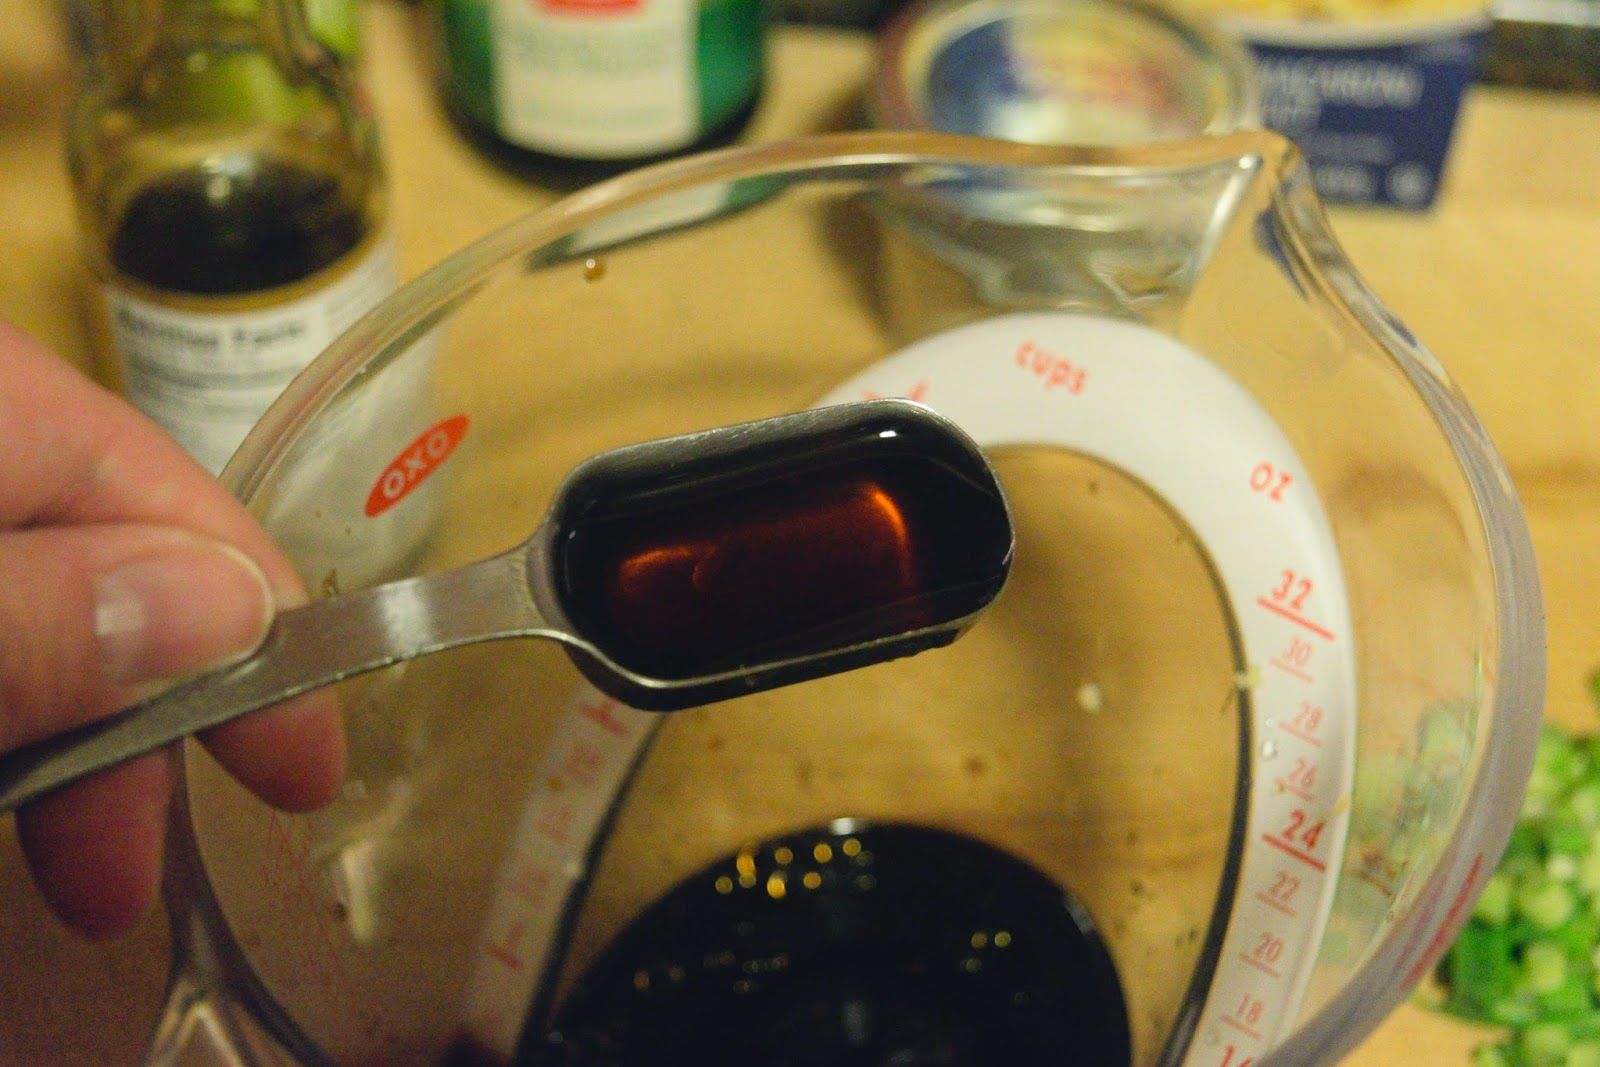 Sesame oil being added to the sauce in the measuring cup.